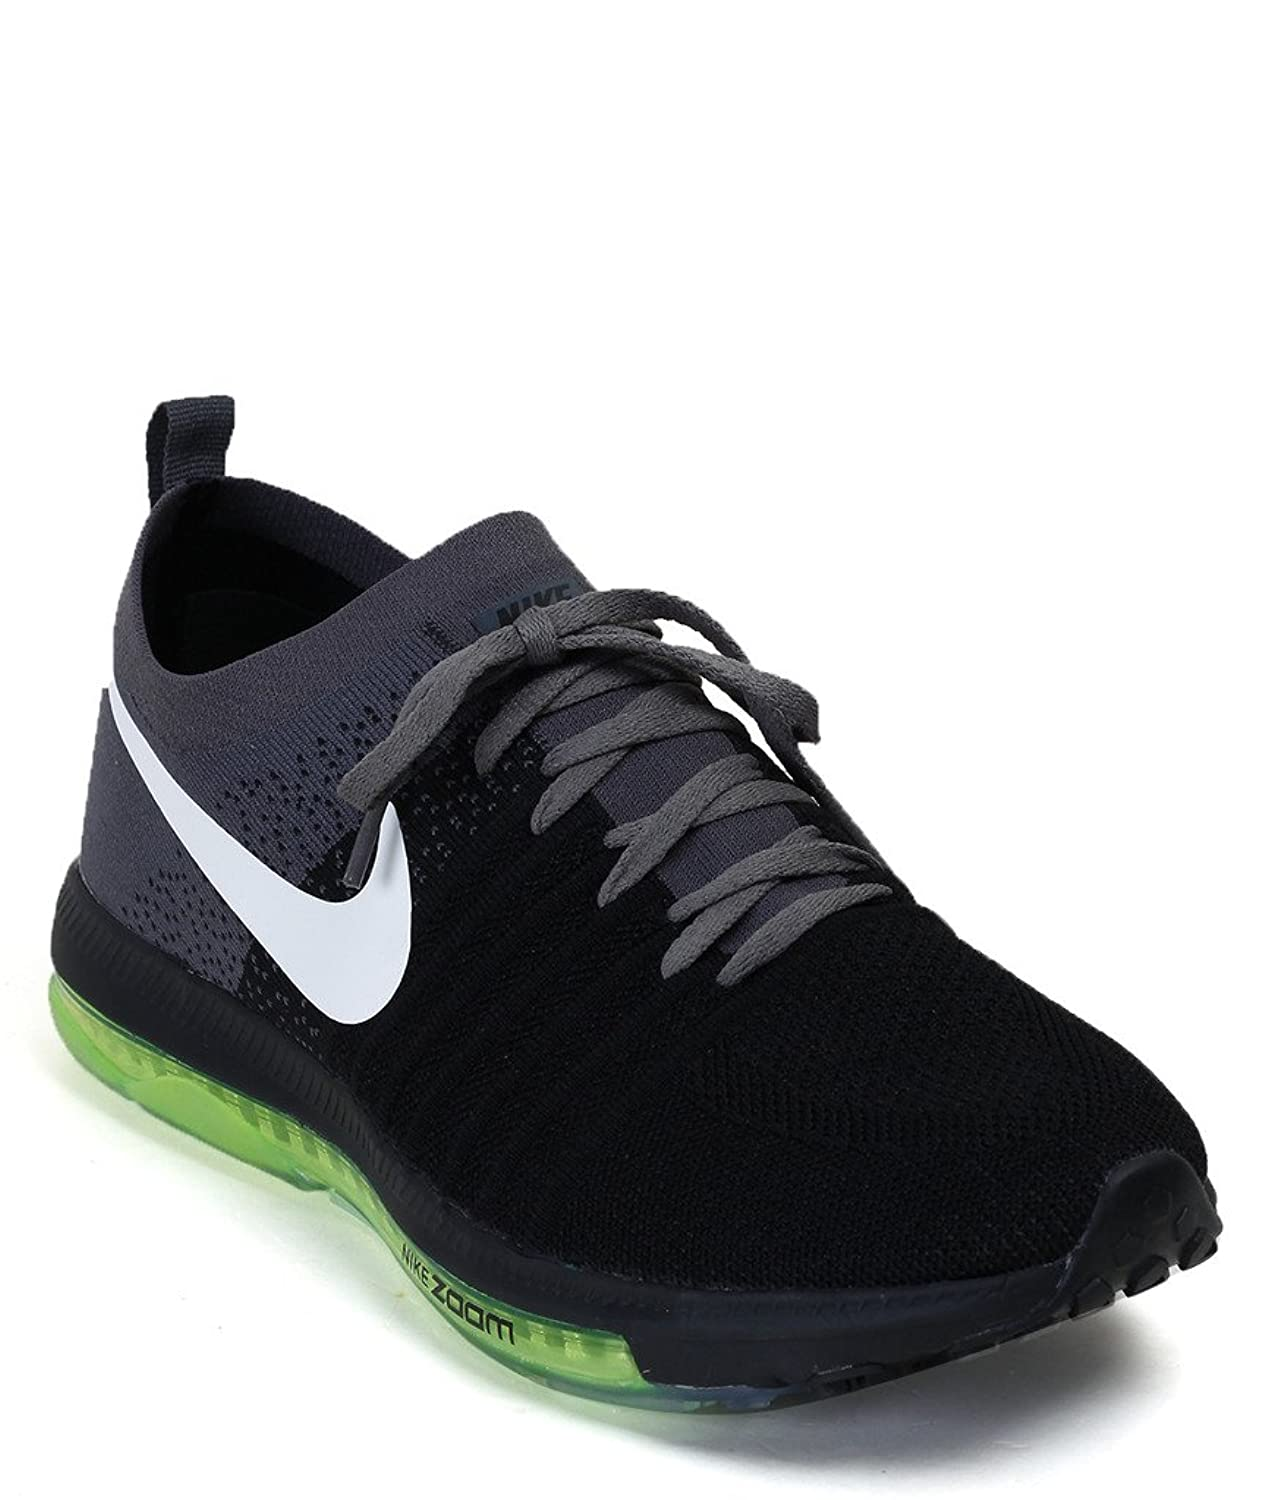 Nike Unisex Black Gray Running Shoes - 7.5: Buy Online at Low Prices in  India - Amazon.in